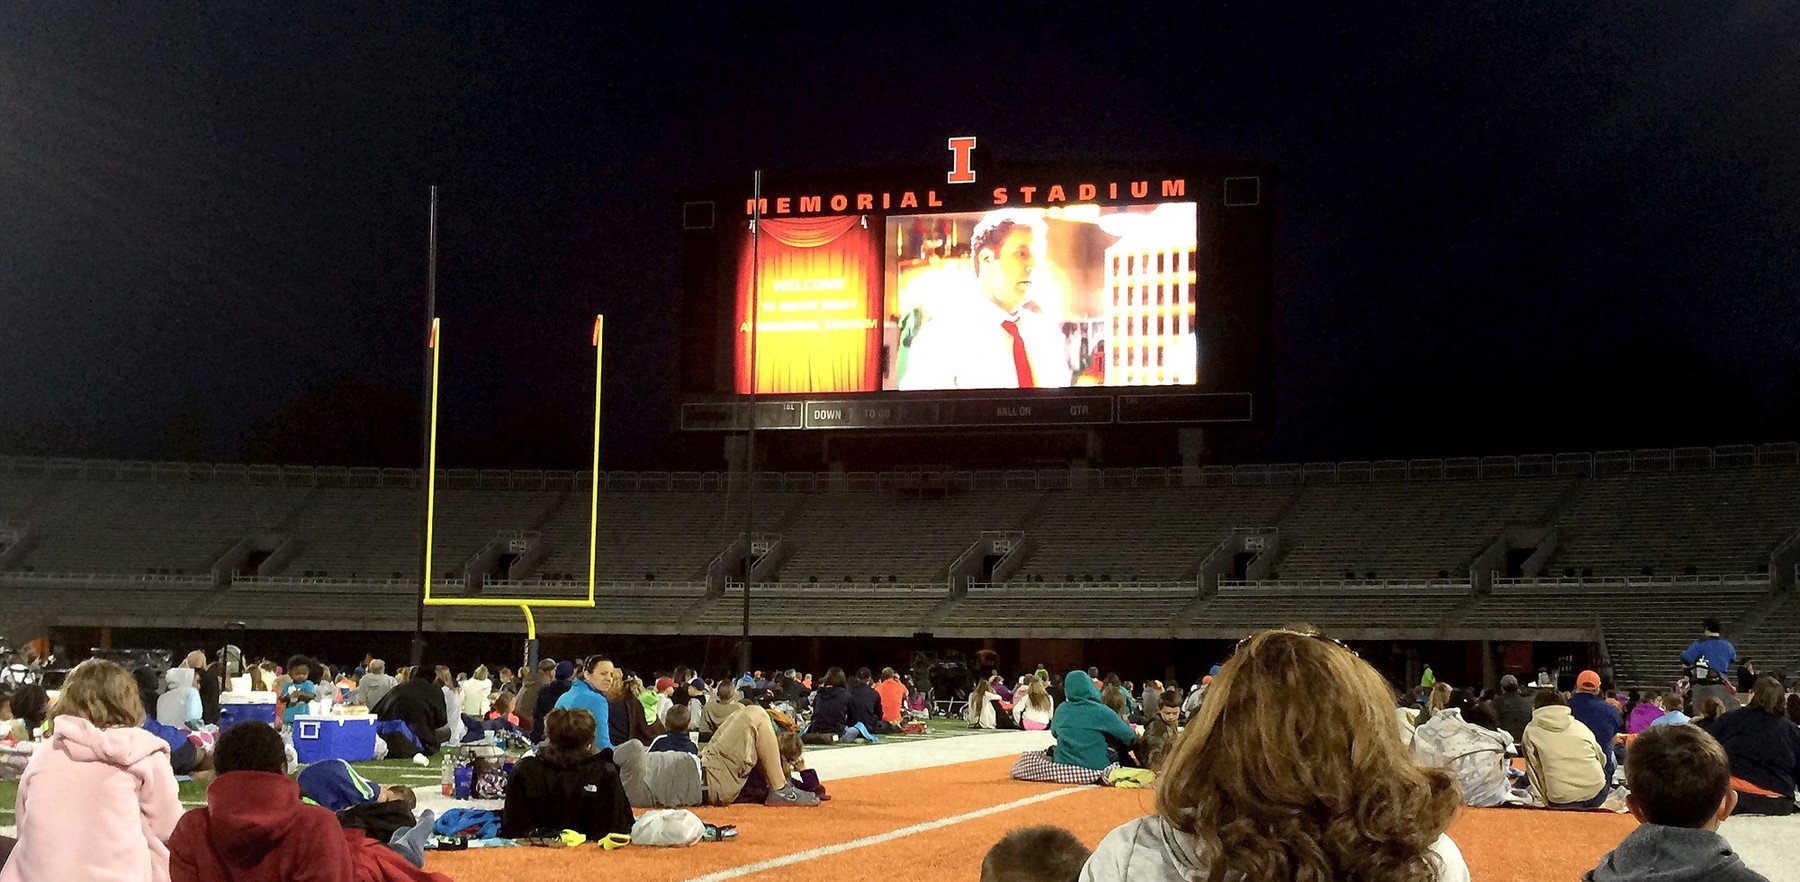 movie plays on the big screen at Memorial Stadium as fans relax on the field